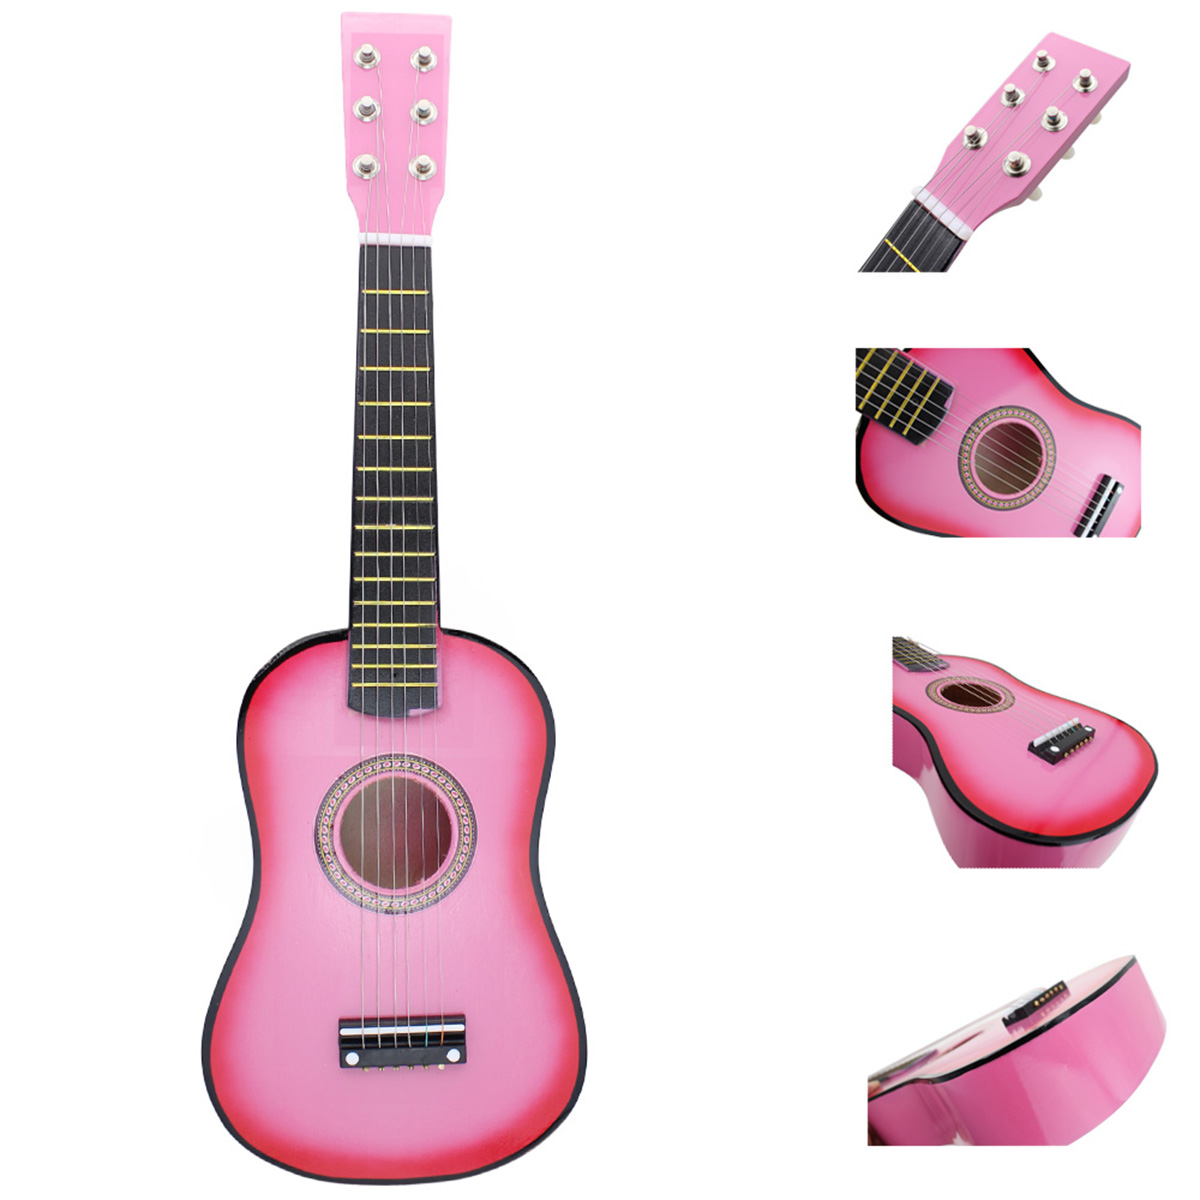 irin mini 23 inch basswood 12 frets 6 string acoustic guitar with pick and strings for kids. Black Bedroom Furniture Sets. Home Design Ideas